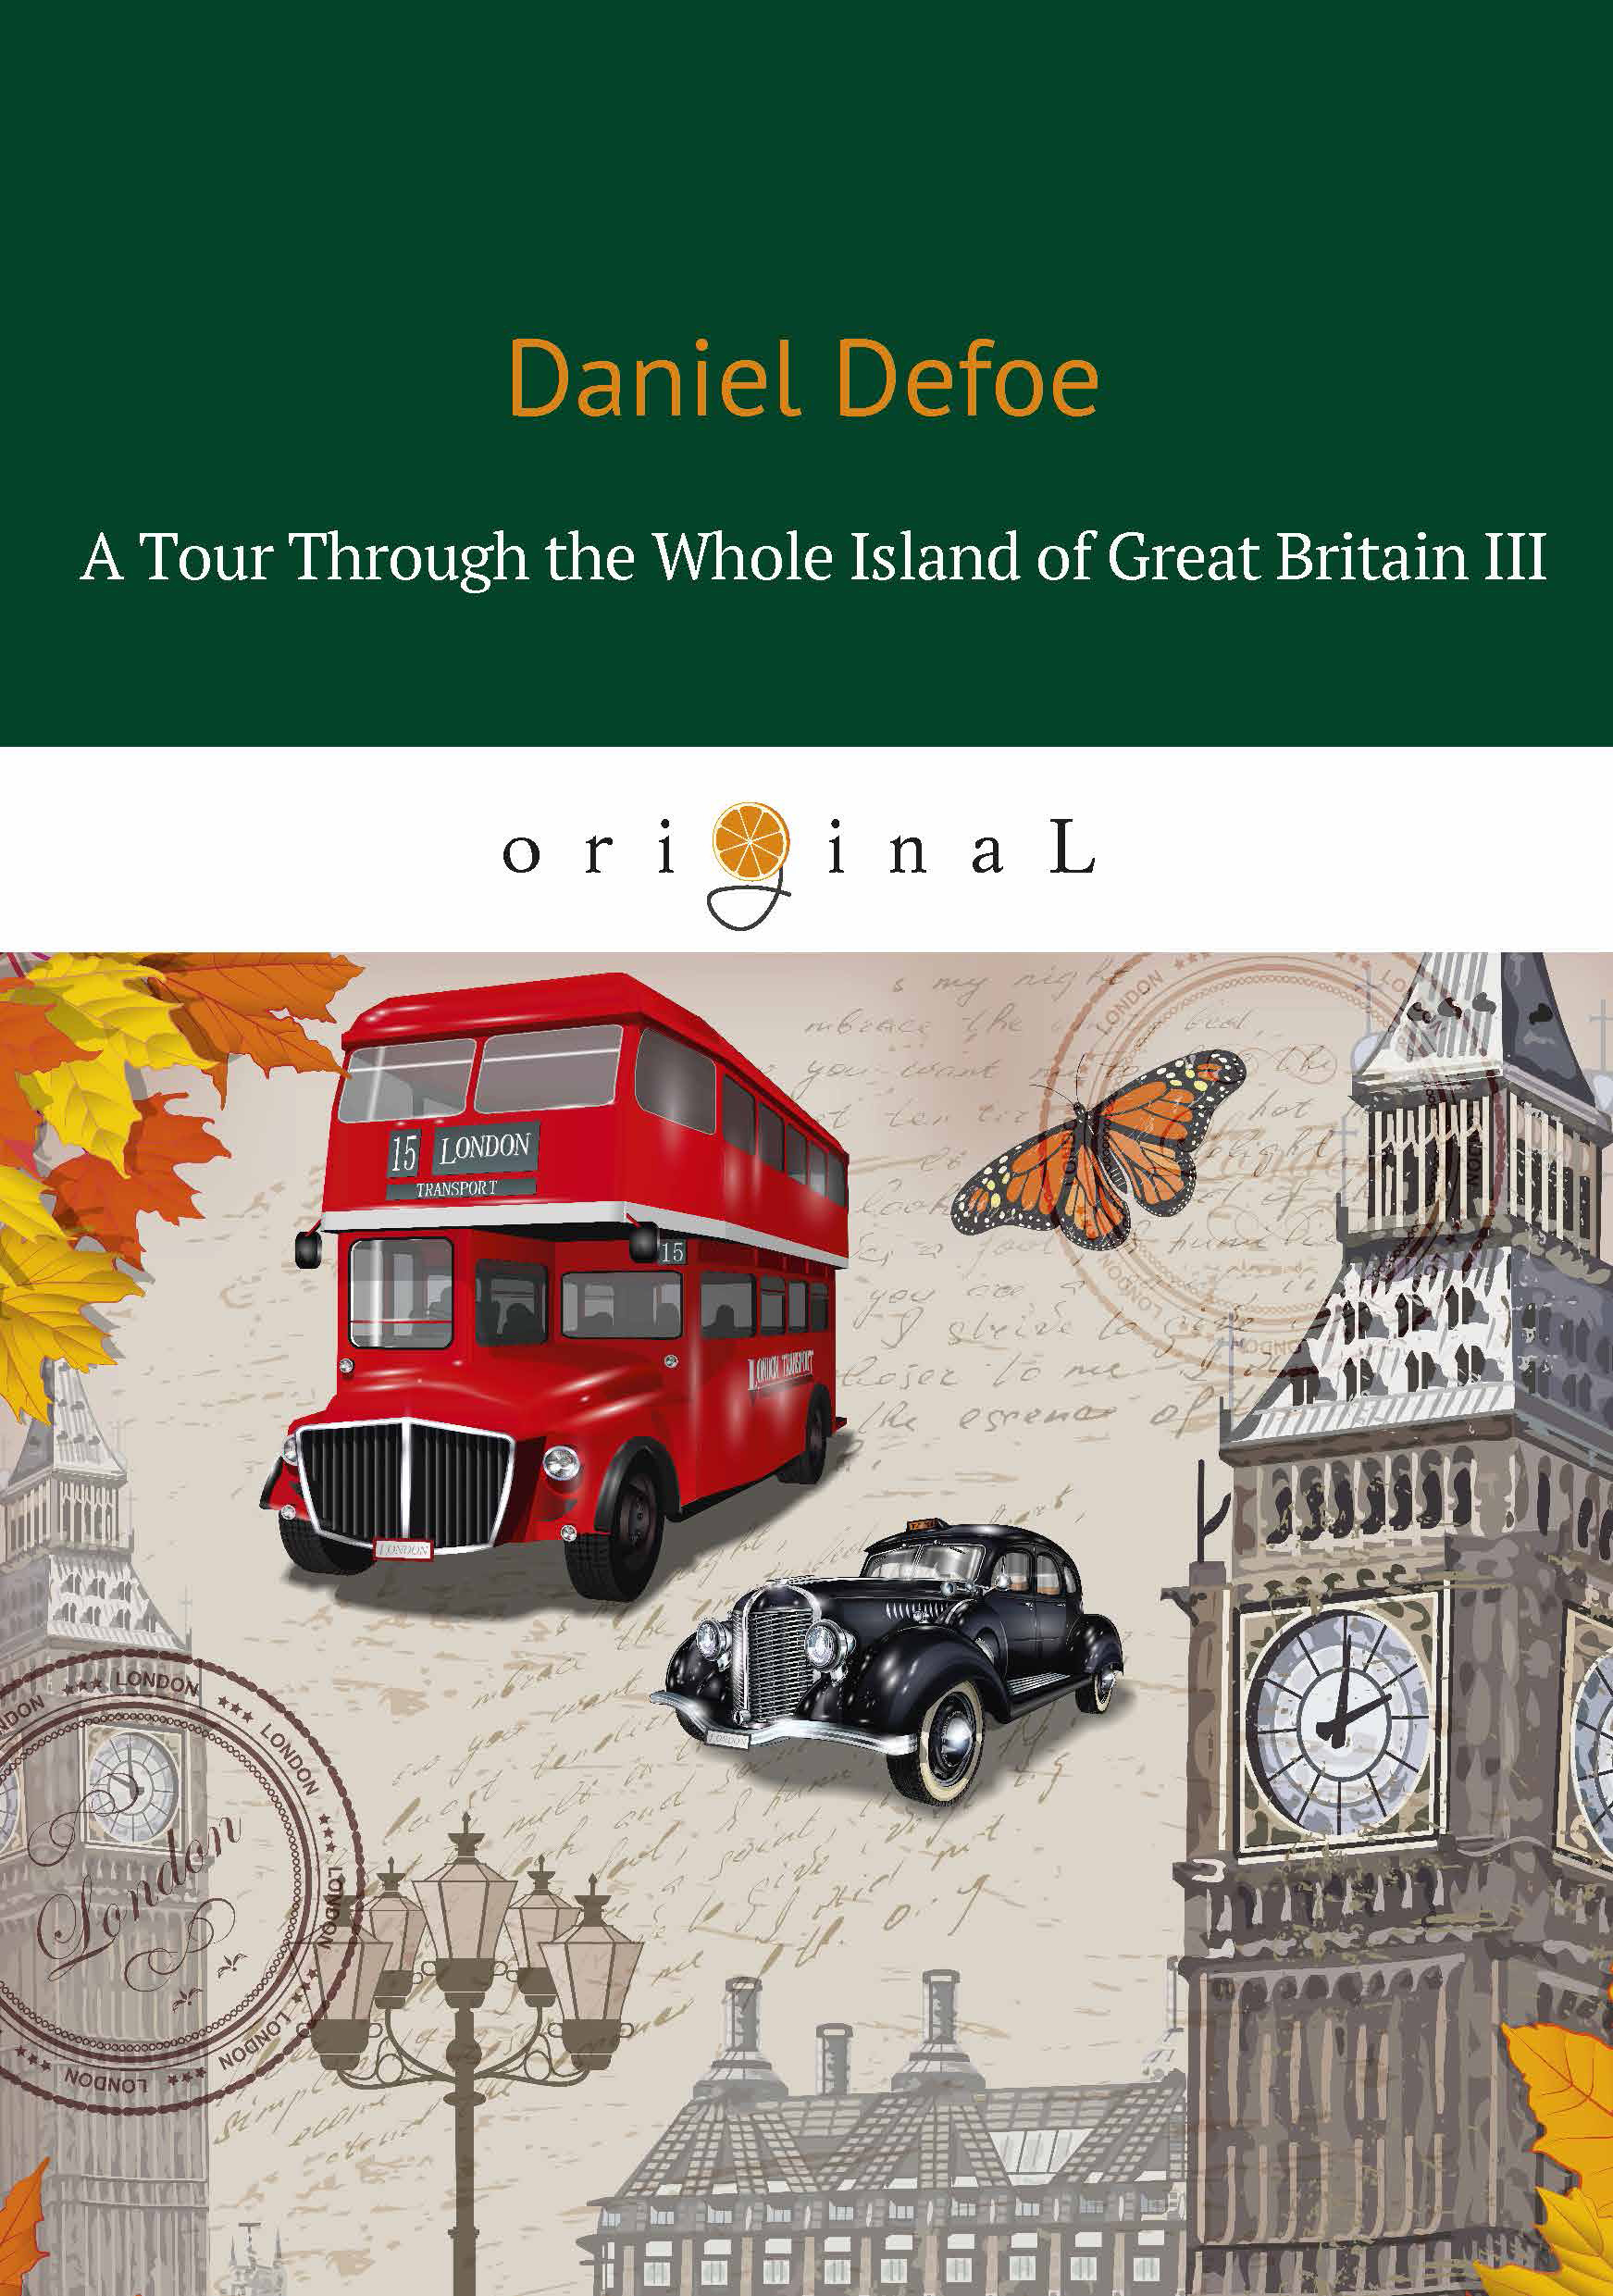 Даниэль Дефо A Tour Through the Whole Island of Great Britain III defoe d a tour through the whole island of great britain 1 тур через великобританию 1 т 6 на англ яз